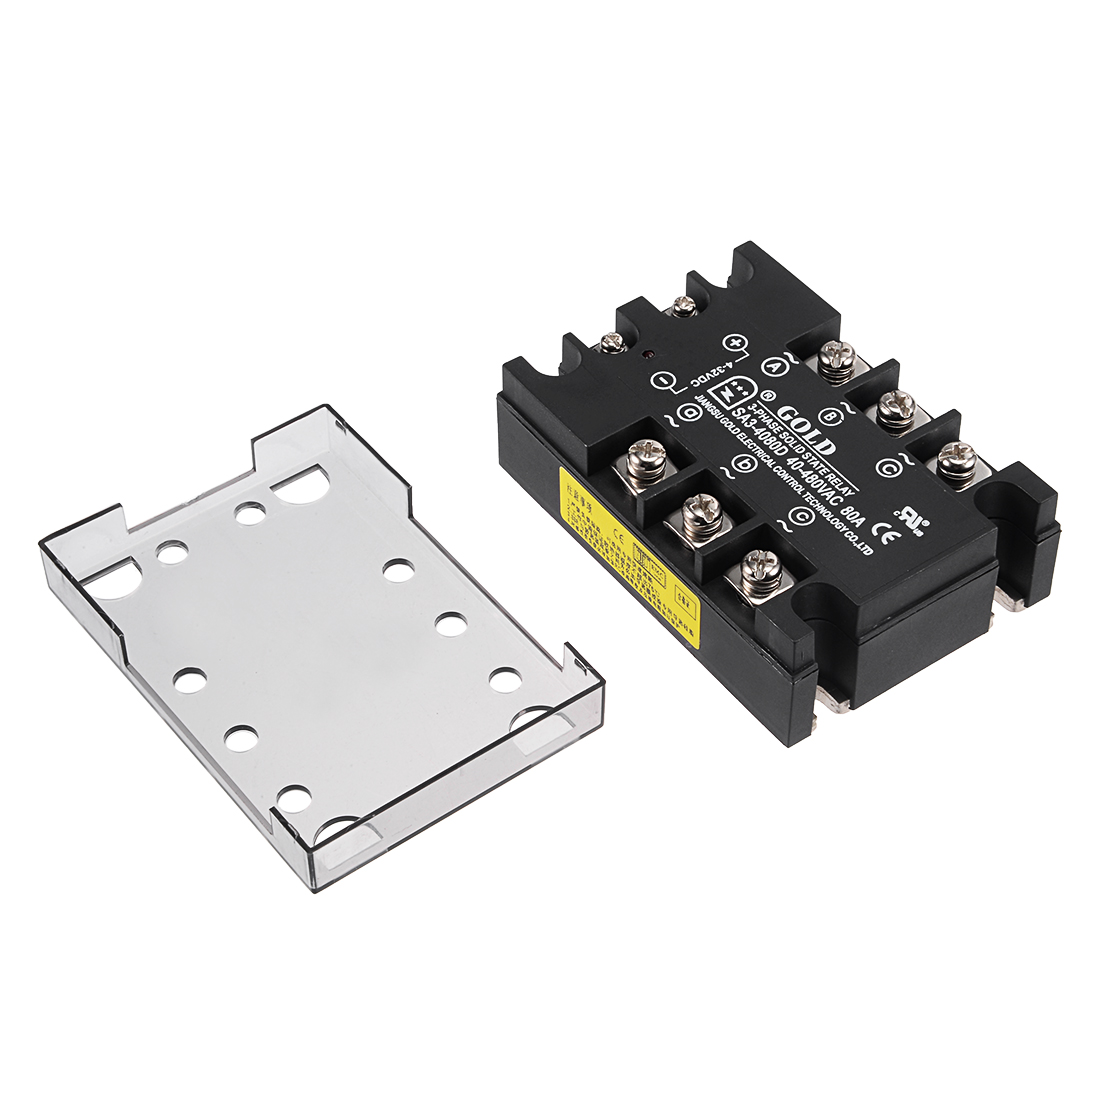 SA34080D 4-32VDC to 40-480VAC 80A Three Phase Solid State Relay Module DC to AC